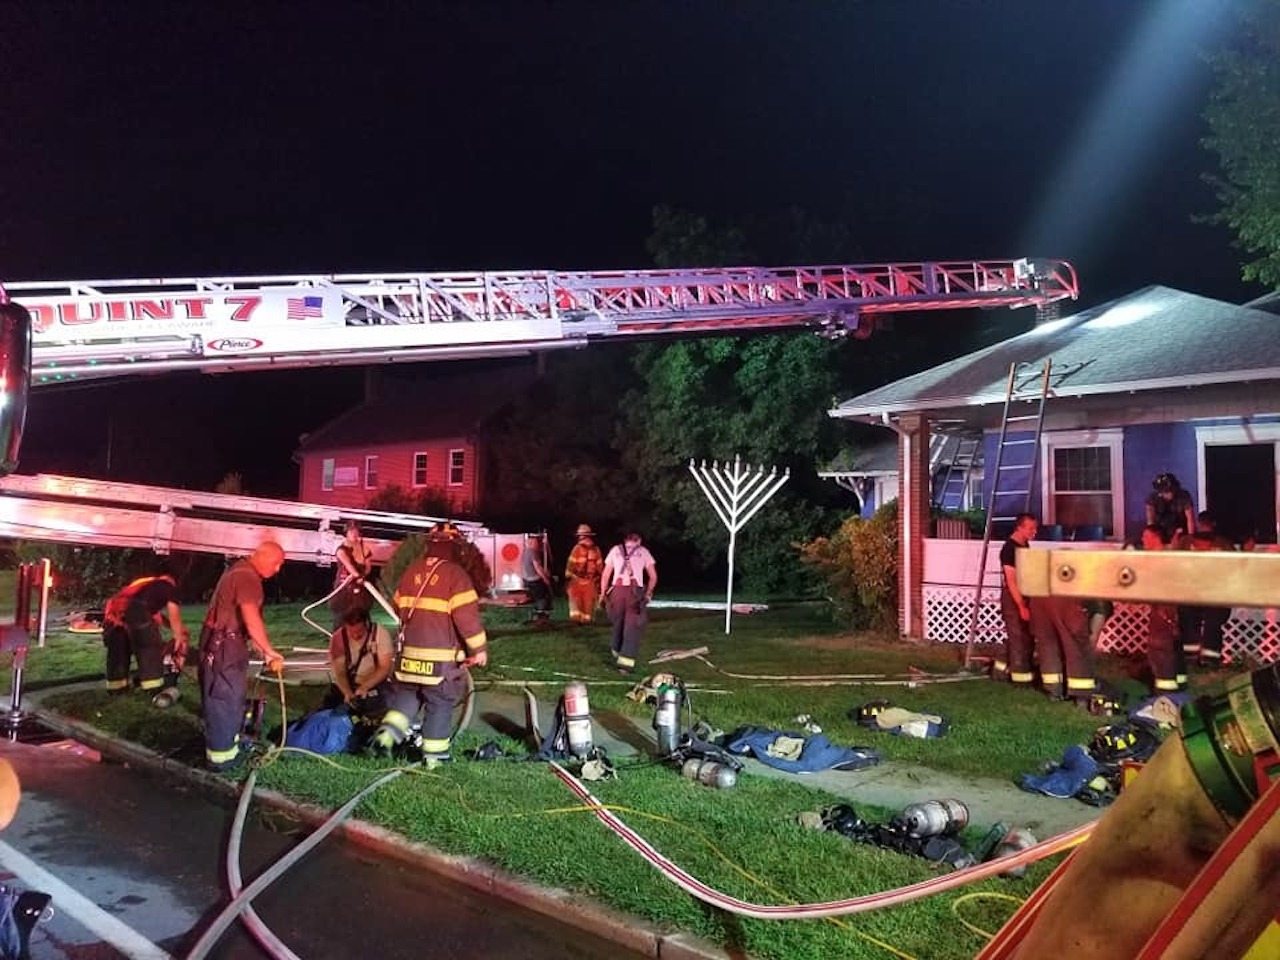 Fire set to Chabad Center at the University of Delaware